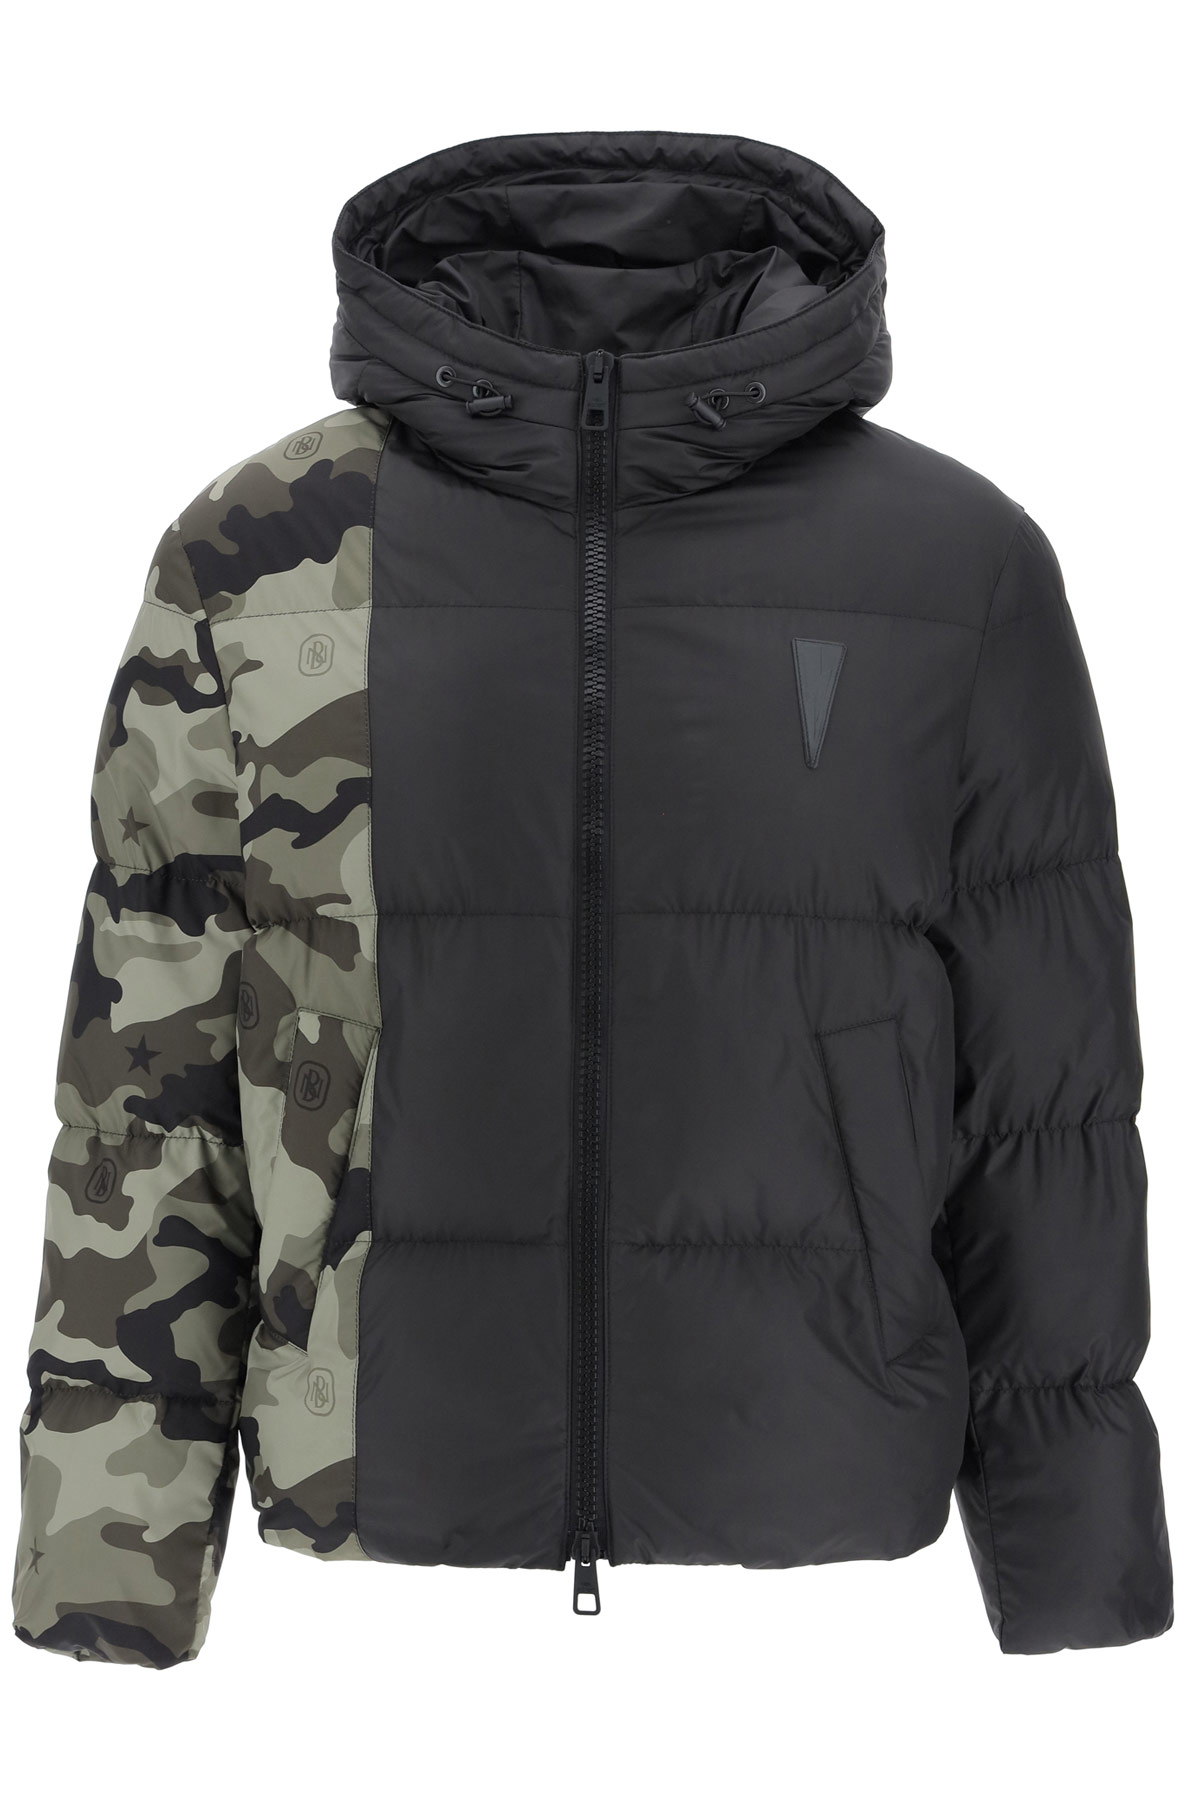 NEIL BARRETT PUFFER JACKET WITH CAMOUFLAGE MOTIF XL Black, Green